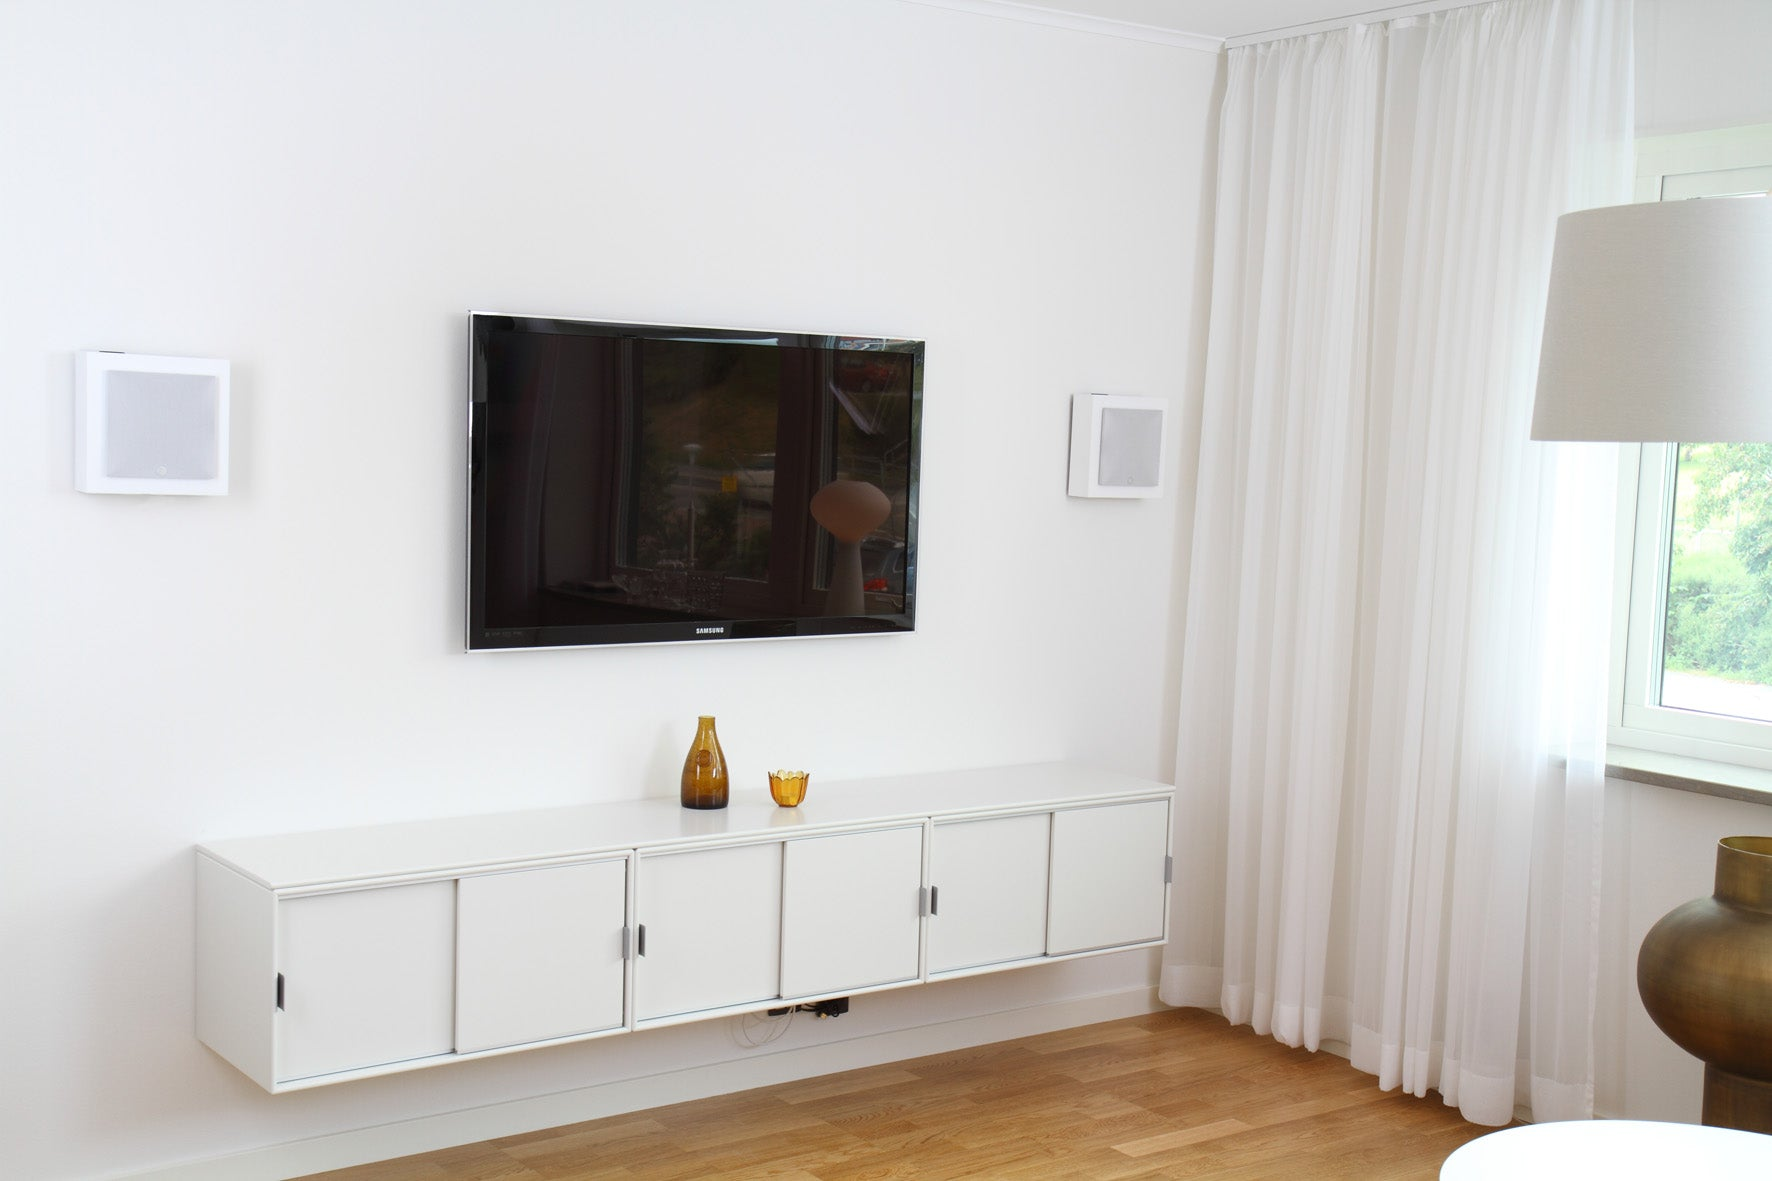 DLS Flatbox Mini On wall speaker - Pair, DLS, On Wall Speaker - Auratech LLC